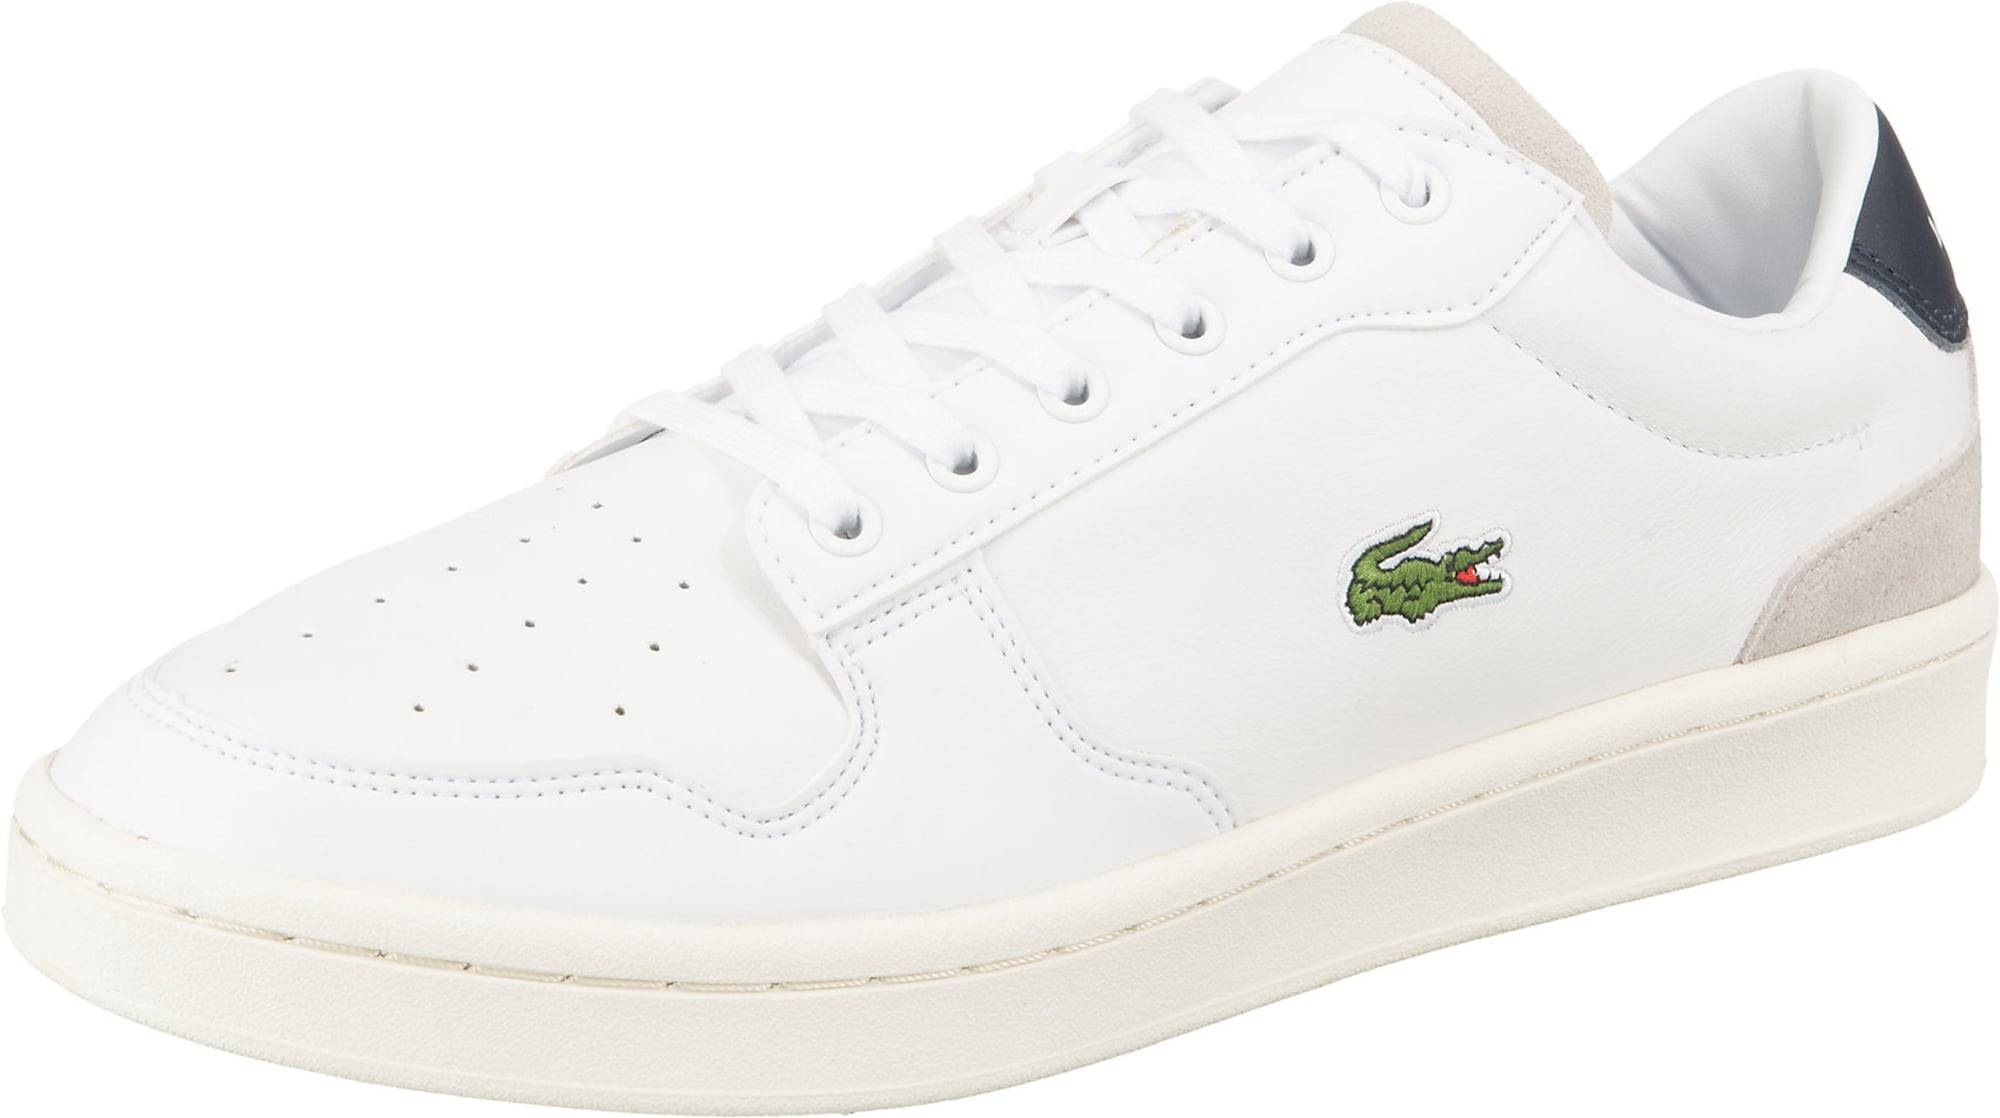 LACOSTE Baskets basses 'Masters Cup'  - Blanc - Taille: 12 - male